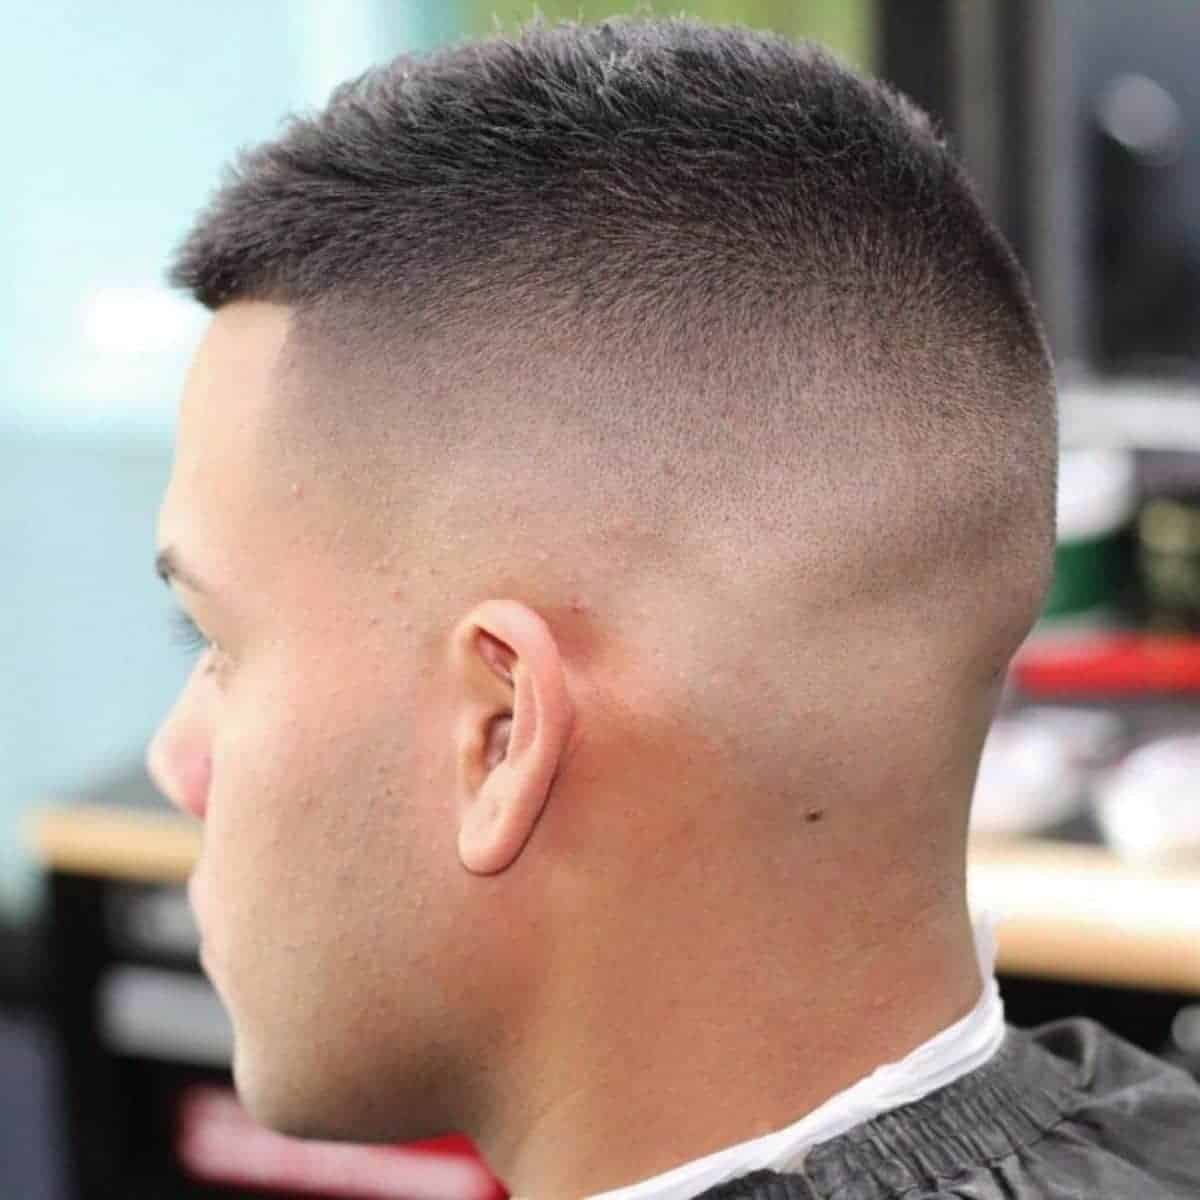 Person with a high fade buzzcut.